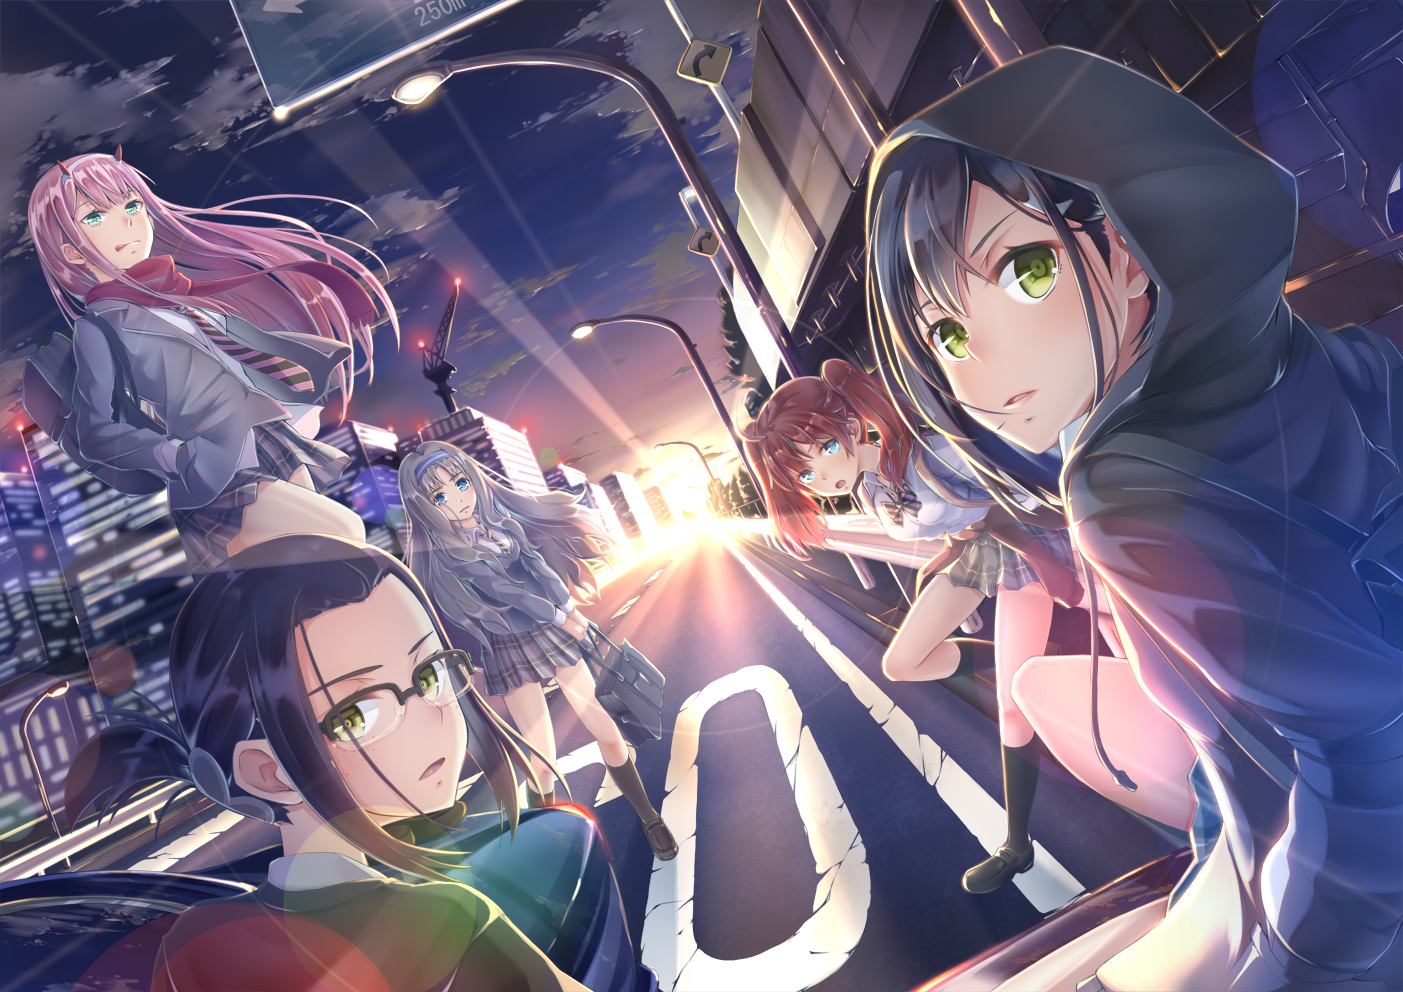 blue_eyes blue_hair bow brown_hair building city clouds darling_in_the_franxx glasses green_eyes group hoodie horns ichigo_(darling_in_the_franxx) ikuno_(darling_in_the_franxx) imo_bouya kneehighs kokoro_(darling_in_the_franxx) long_hair miku_(darling_in_the_franxx) pink_hair ponytail scarf school_uniform short_hair sky sunset tie twintails zero_two